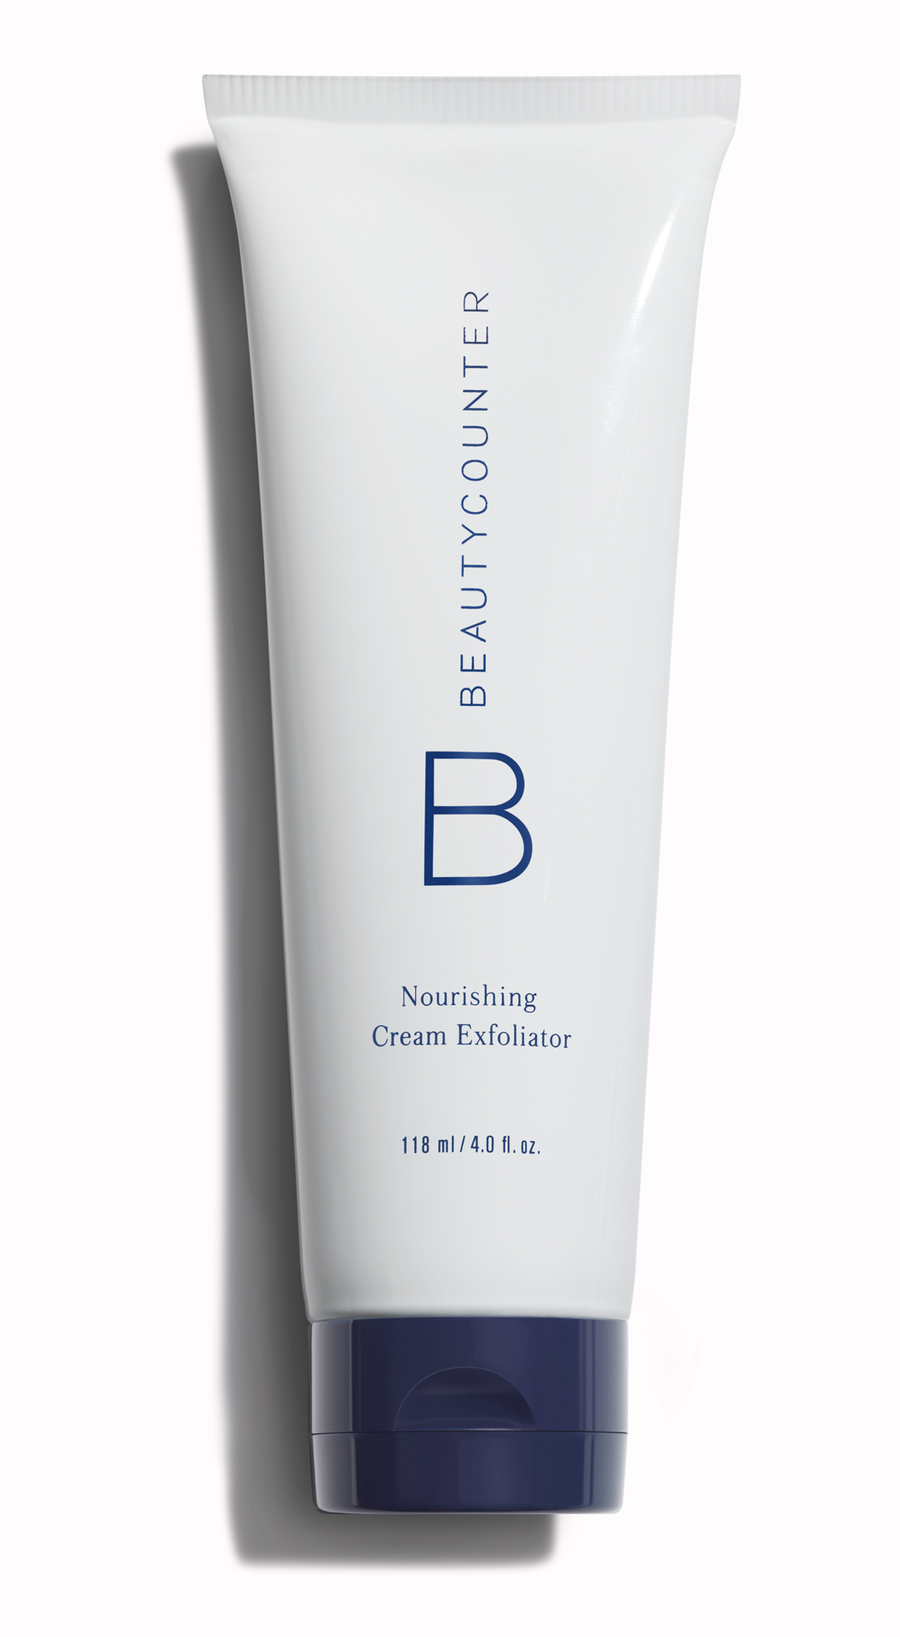 Nourishing Cream Exfoliator